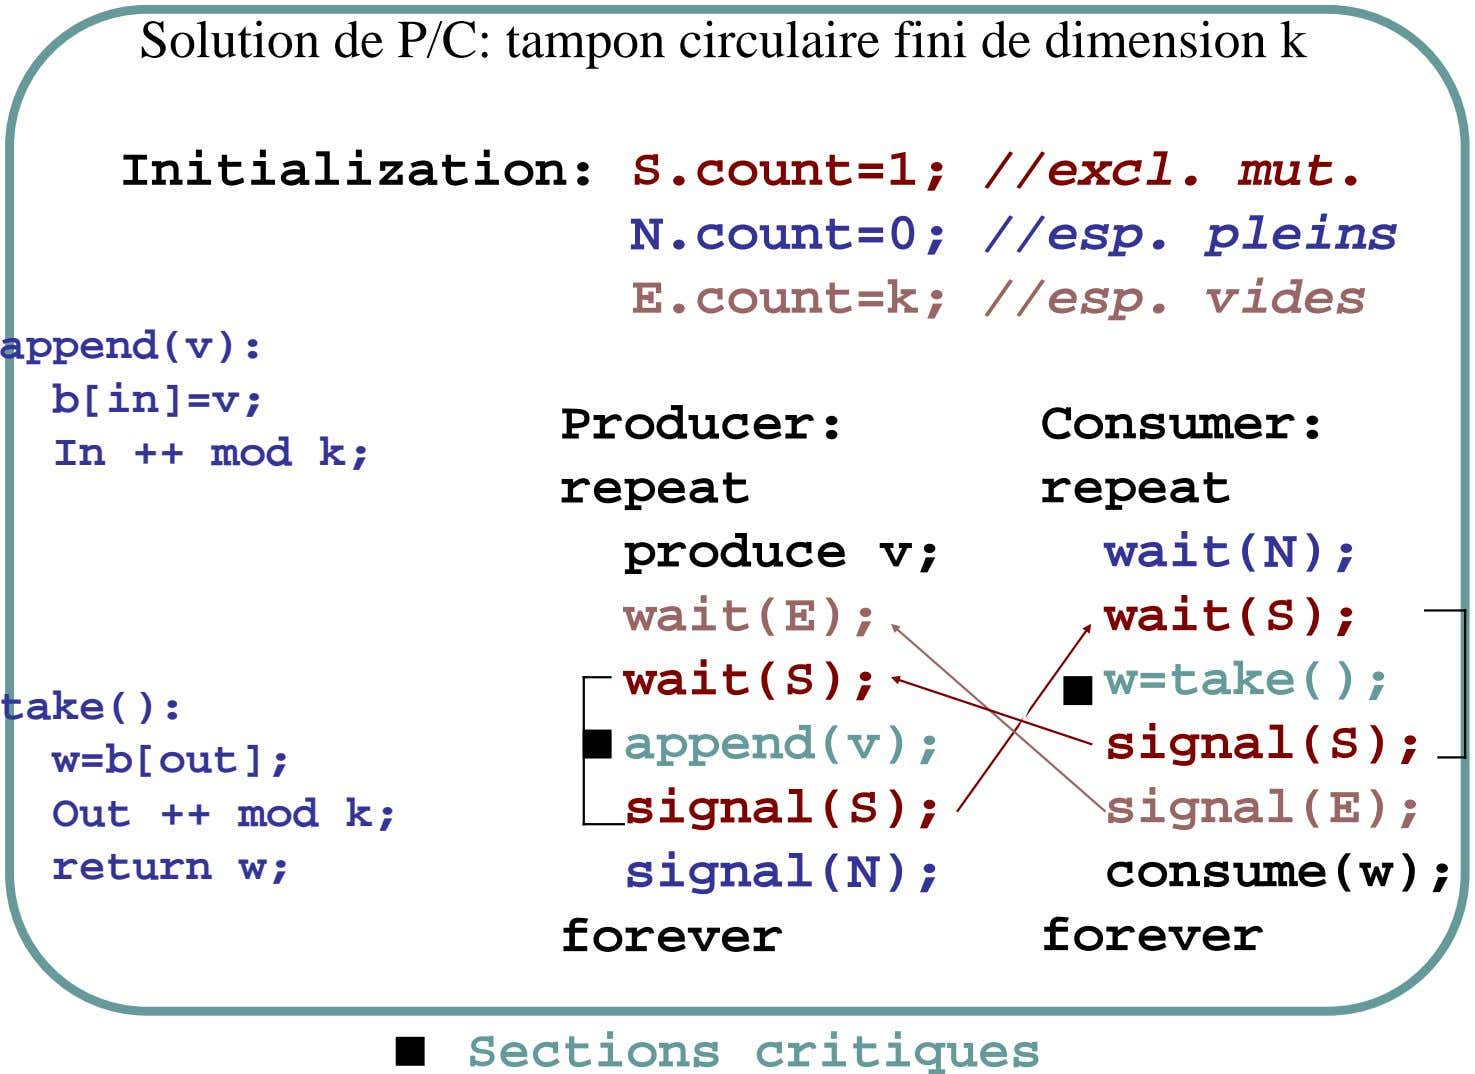 Solution de P/C: tampon circulaire fini de dimension k Initialization: S.count=1; //excl. mut. N.count=0; //esp. pleins